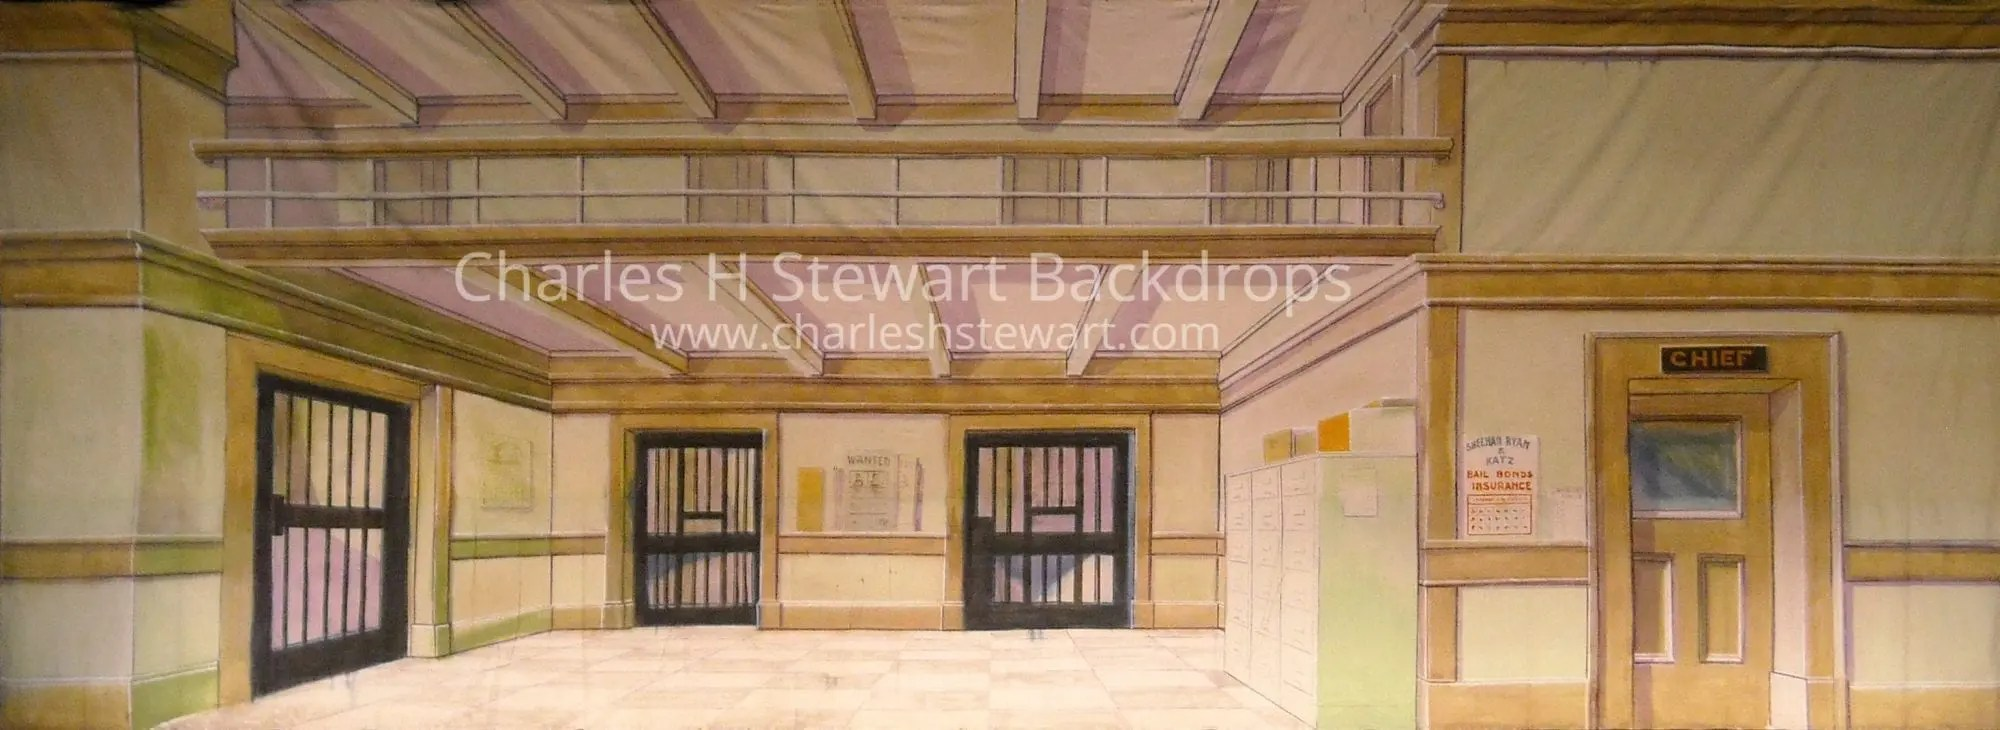 Police Station Backdrop  Backdrops by Charles H Stewart